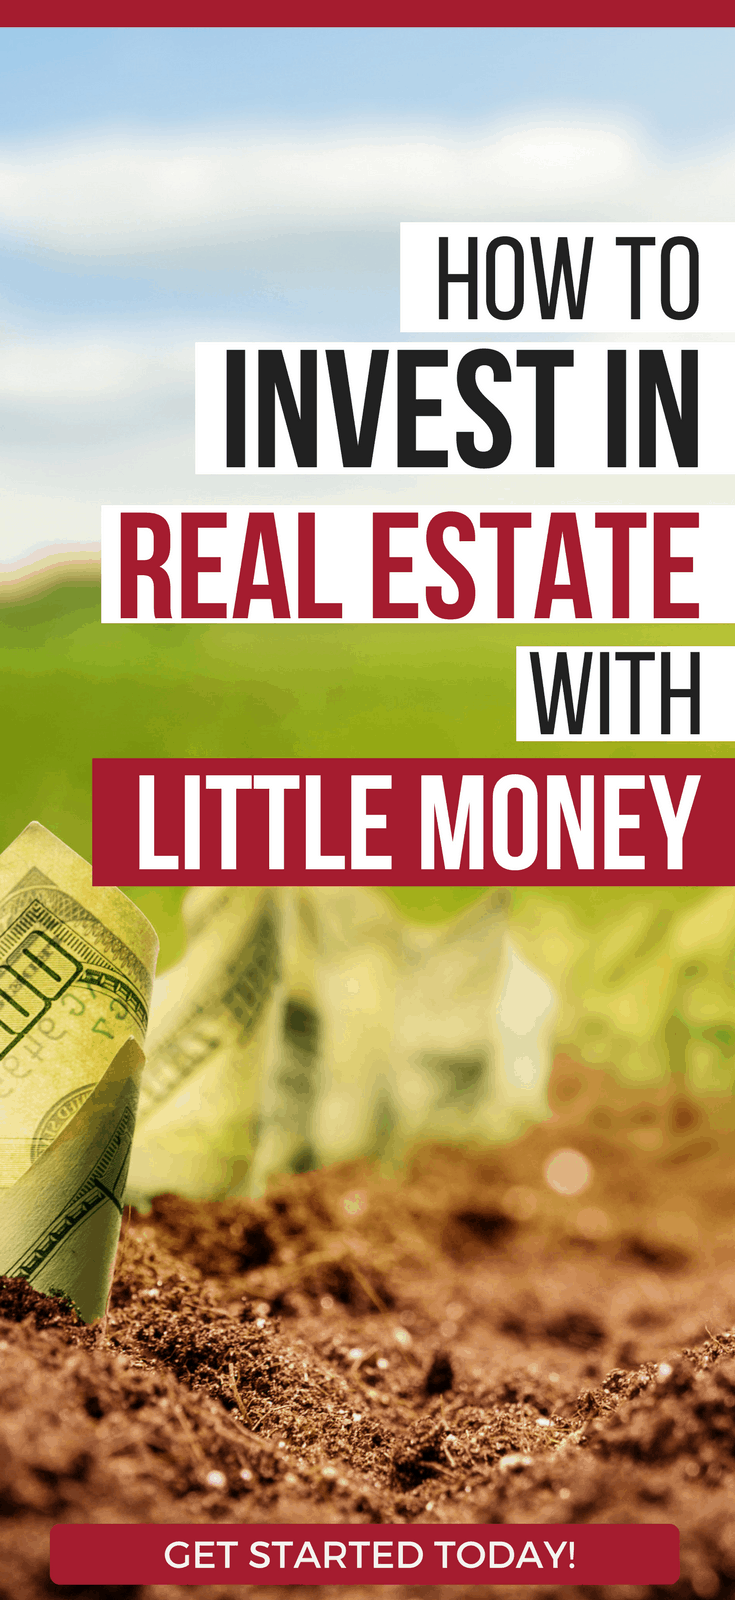 PeerStreet Review: How It Works, Minimum Investment, & More  Get Started Investing In Real Estate With Little Money  peerstreet | real estate investing | crowdfunding real estate | investing in real estate notes  #thewaystowealth #investing #realestate #peerstreet